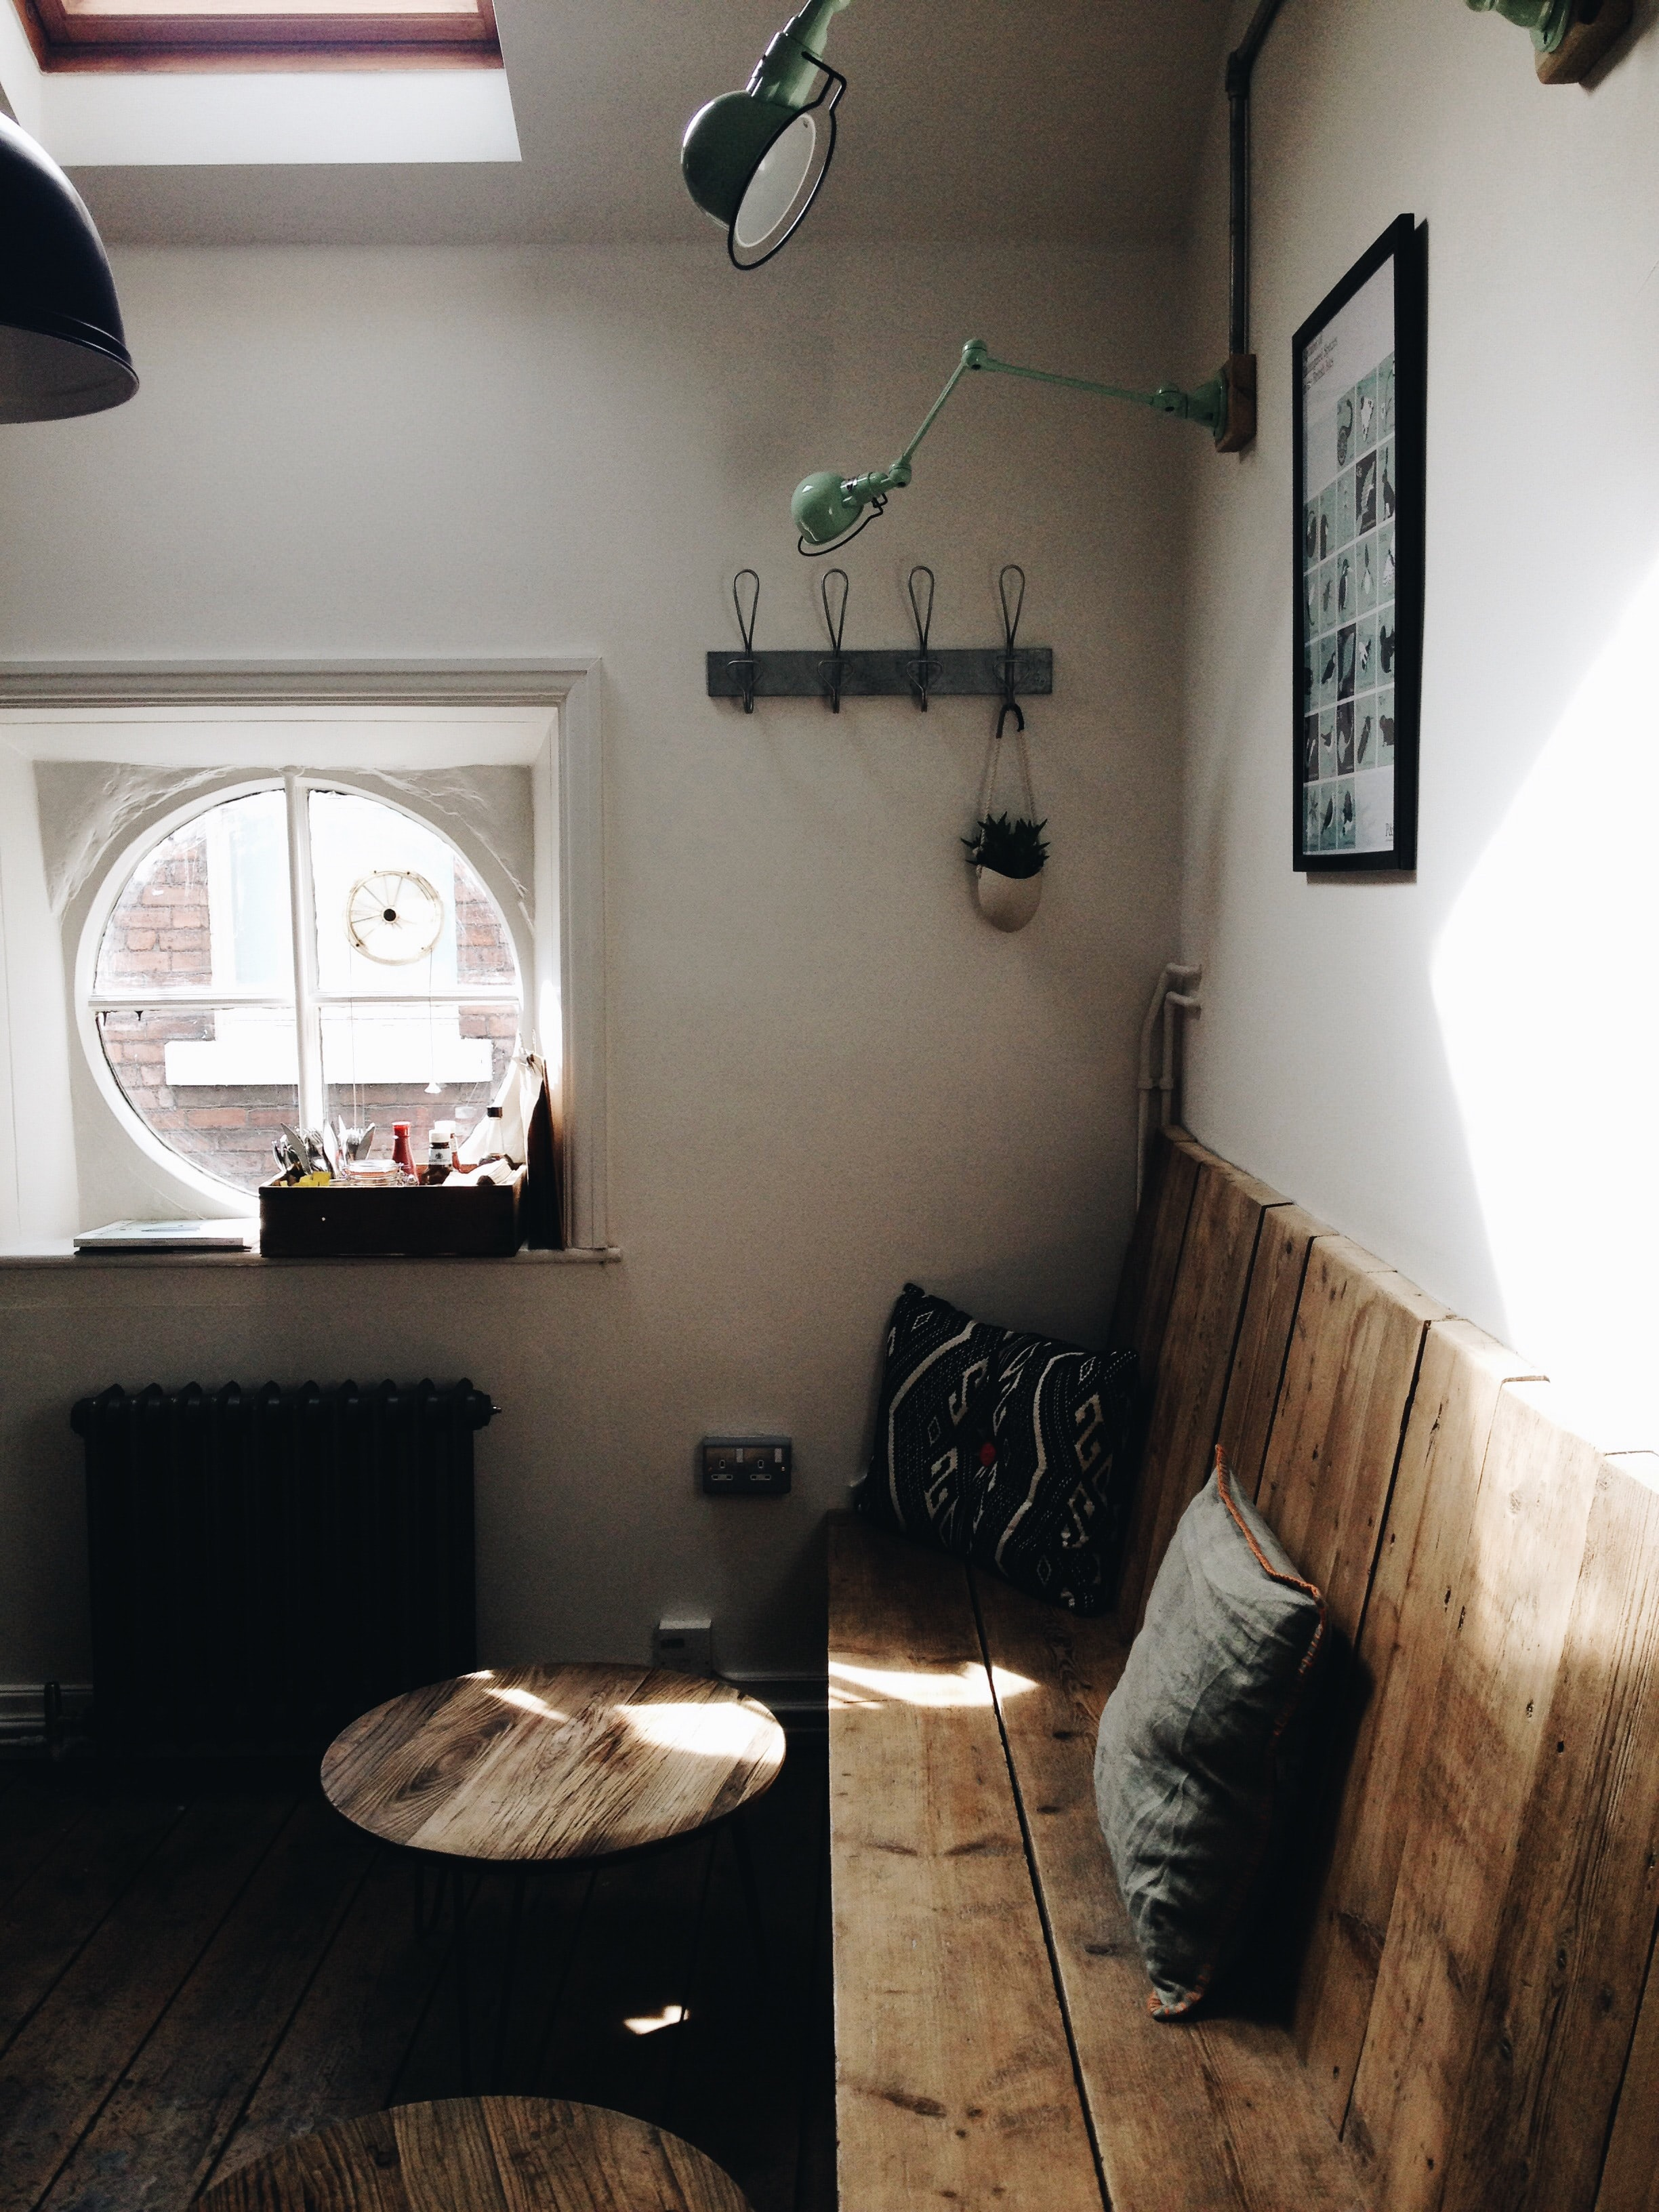 A wooden bench and two coffee tables in a vintage-style room